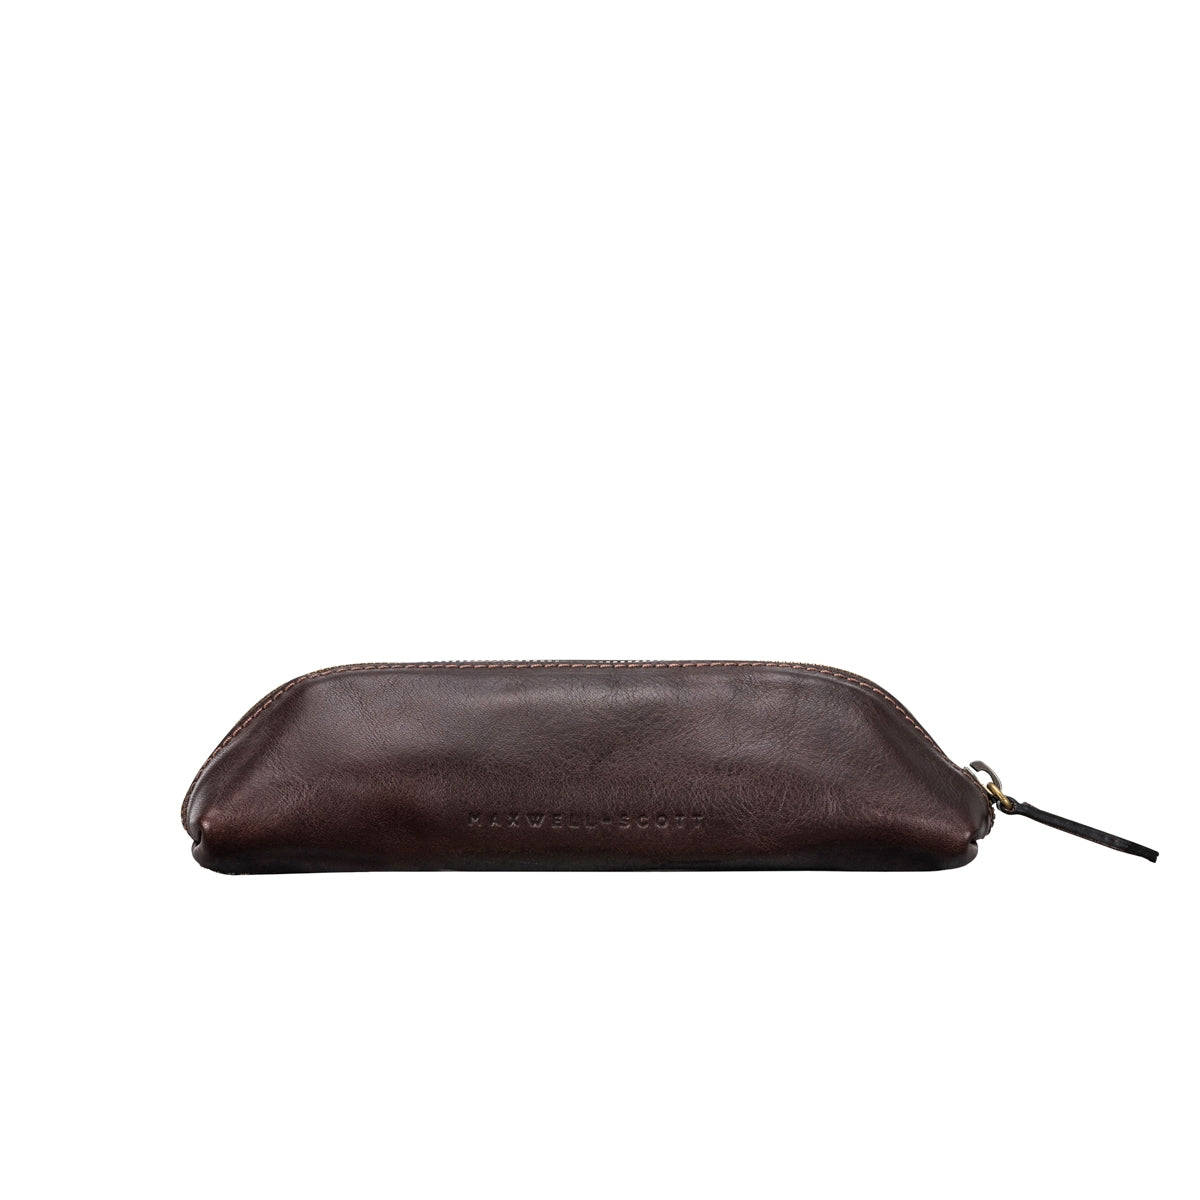 Image 4 of the 'Felice' Dark Chocolate Veg-Tanned Leather Pencil Case